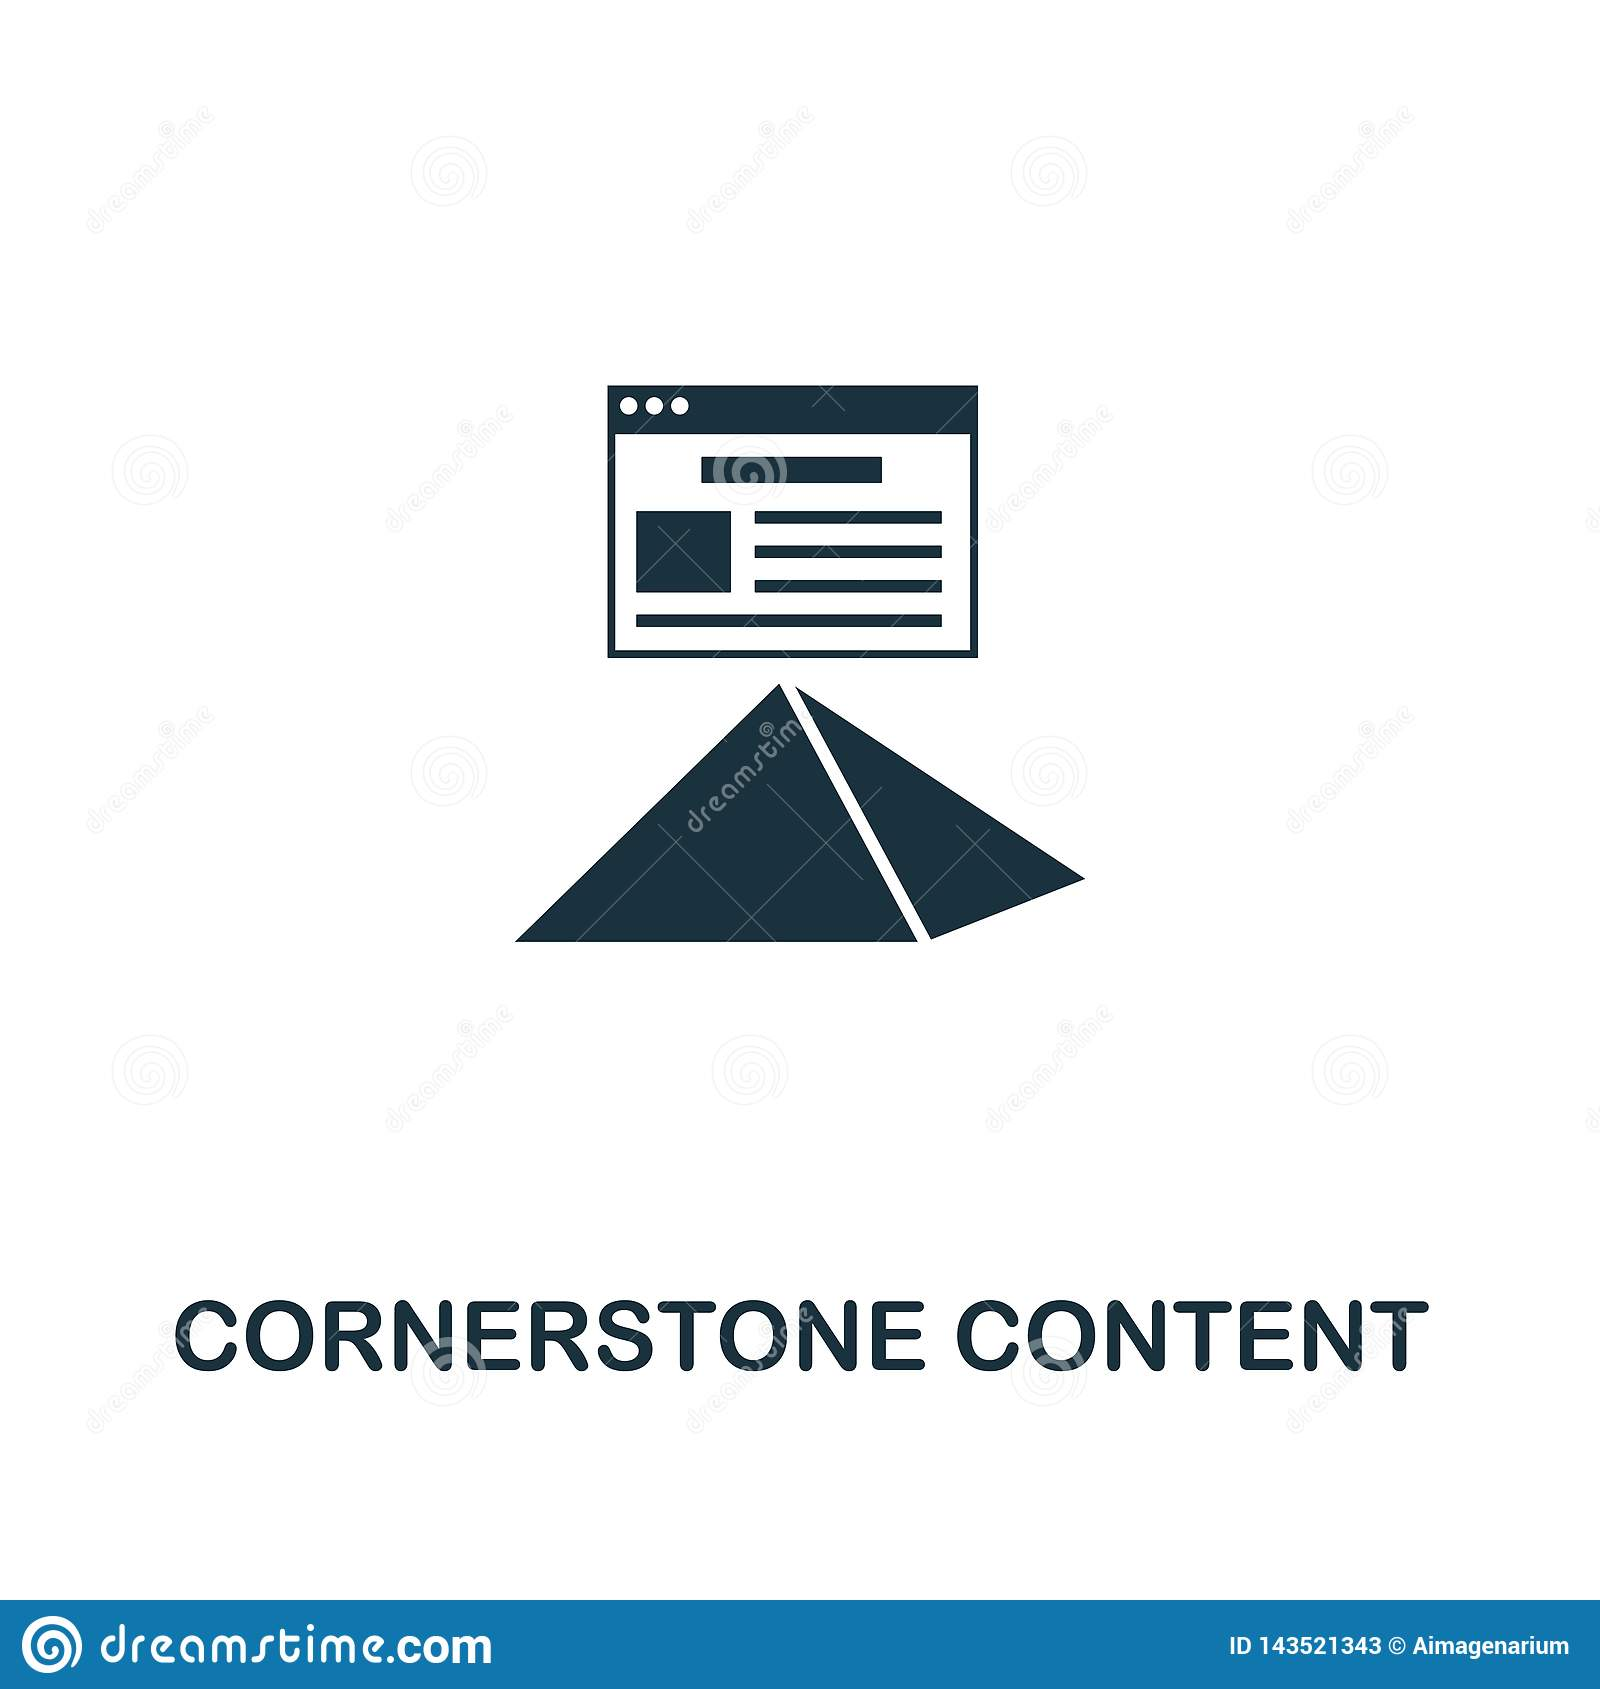 Cornerstone Content icon. Creative element design from content icons collection. Pixel perfect Cornerstone Content icon for web